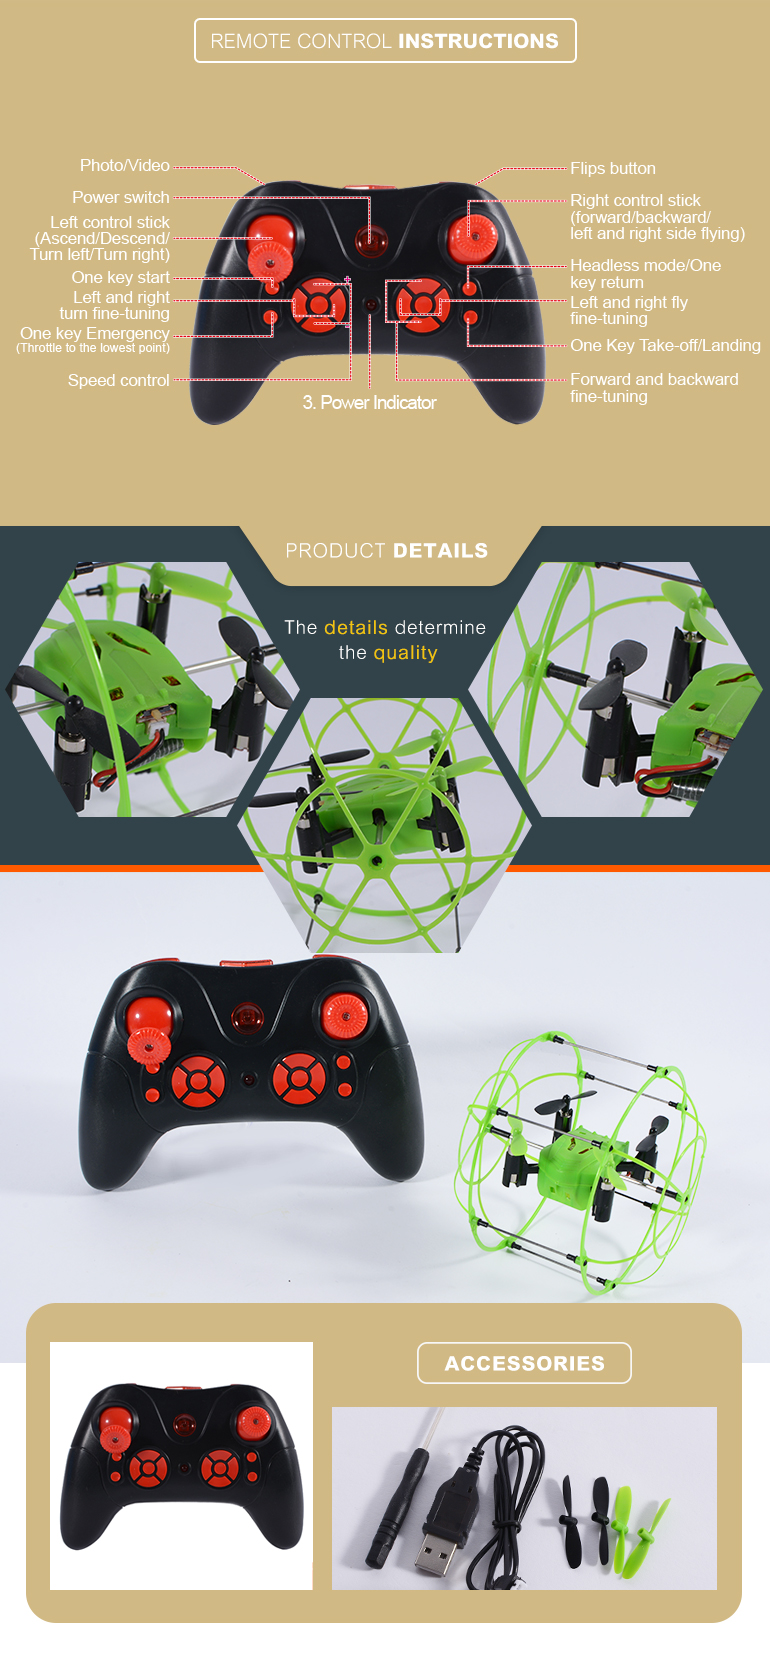 rc quadcopter drone 2.4G 4CH 6-axis gyro ball dron for OEM color